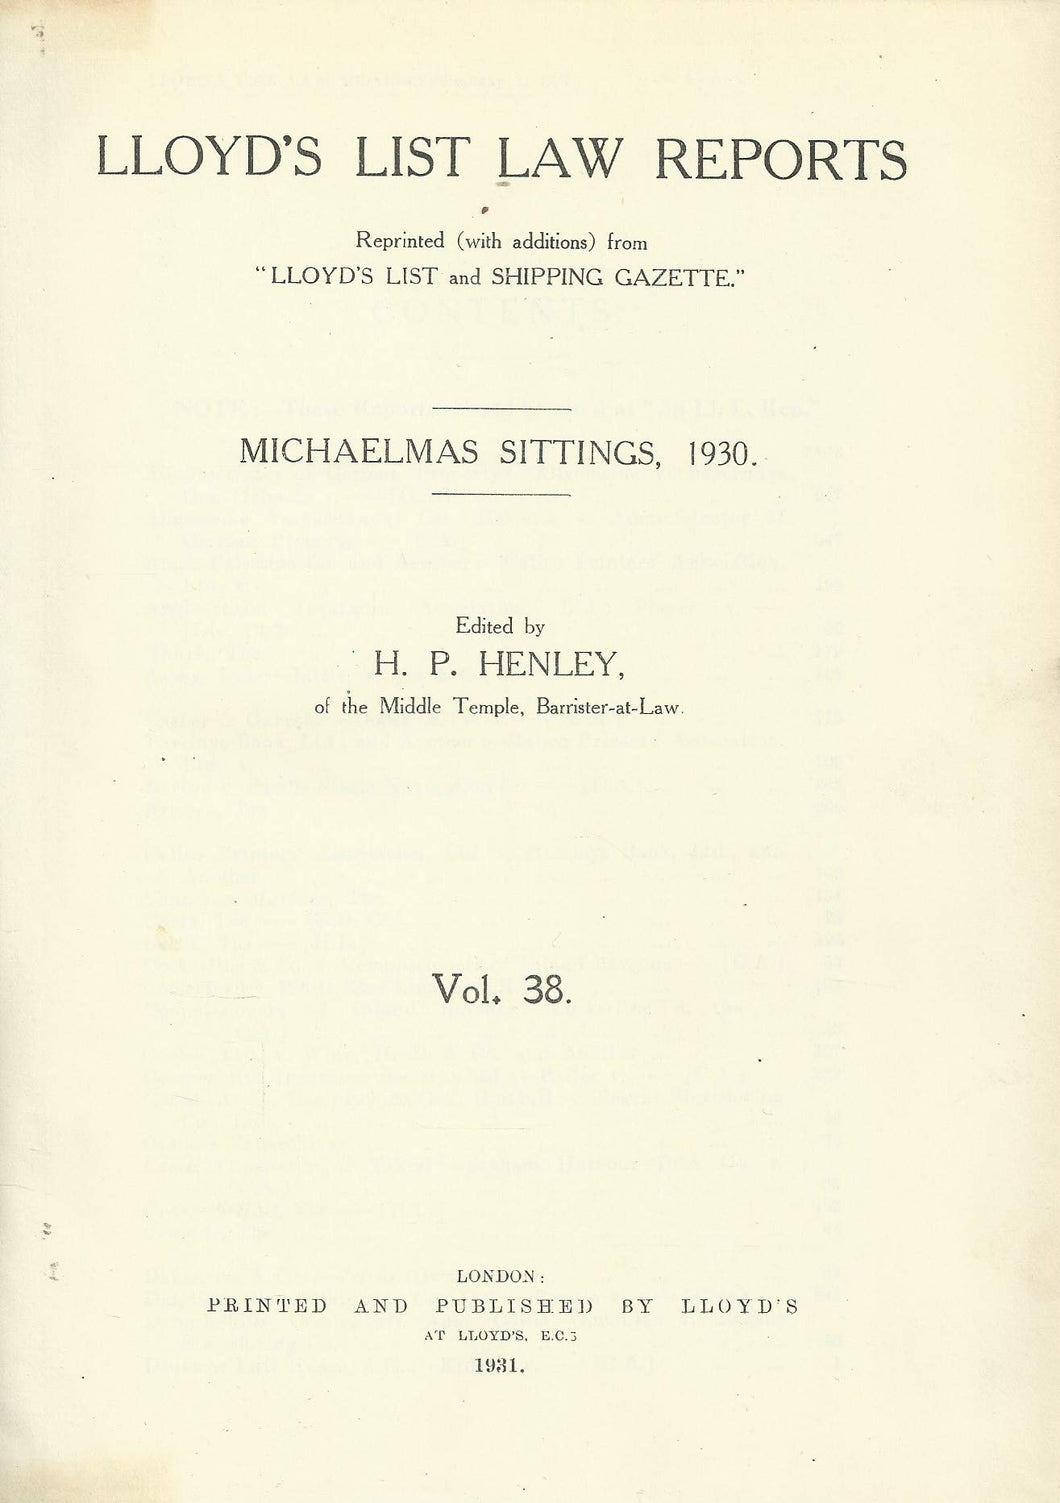 Lloyd's List Law Reports - Volume 38, Michaelmas Sittings, 1930